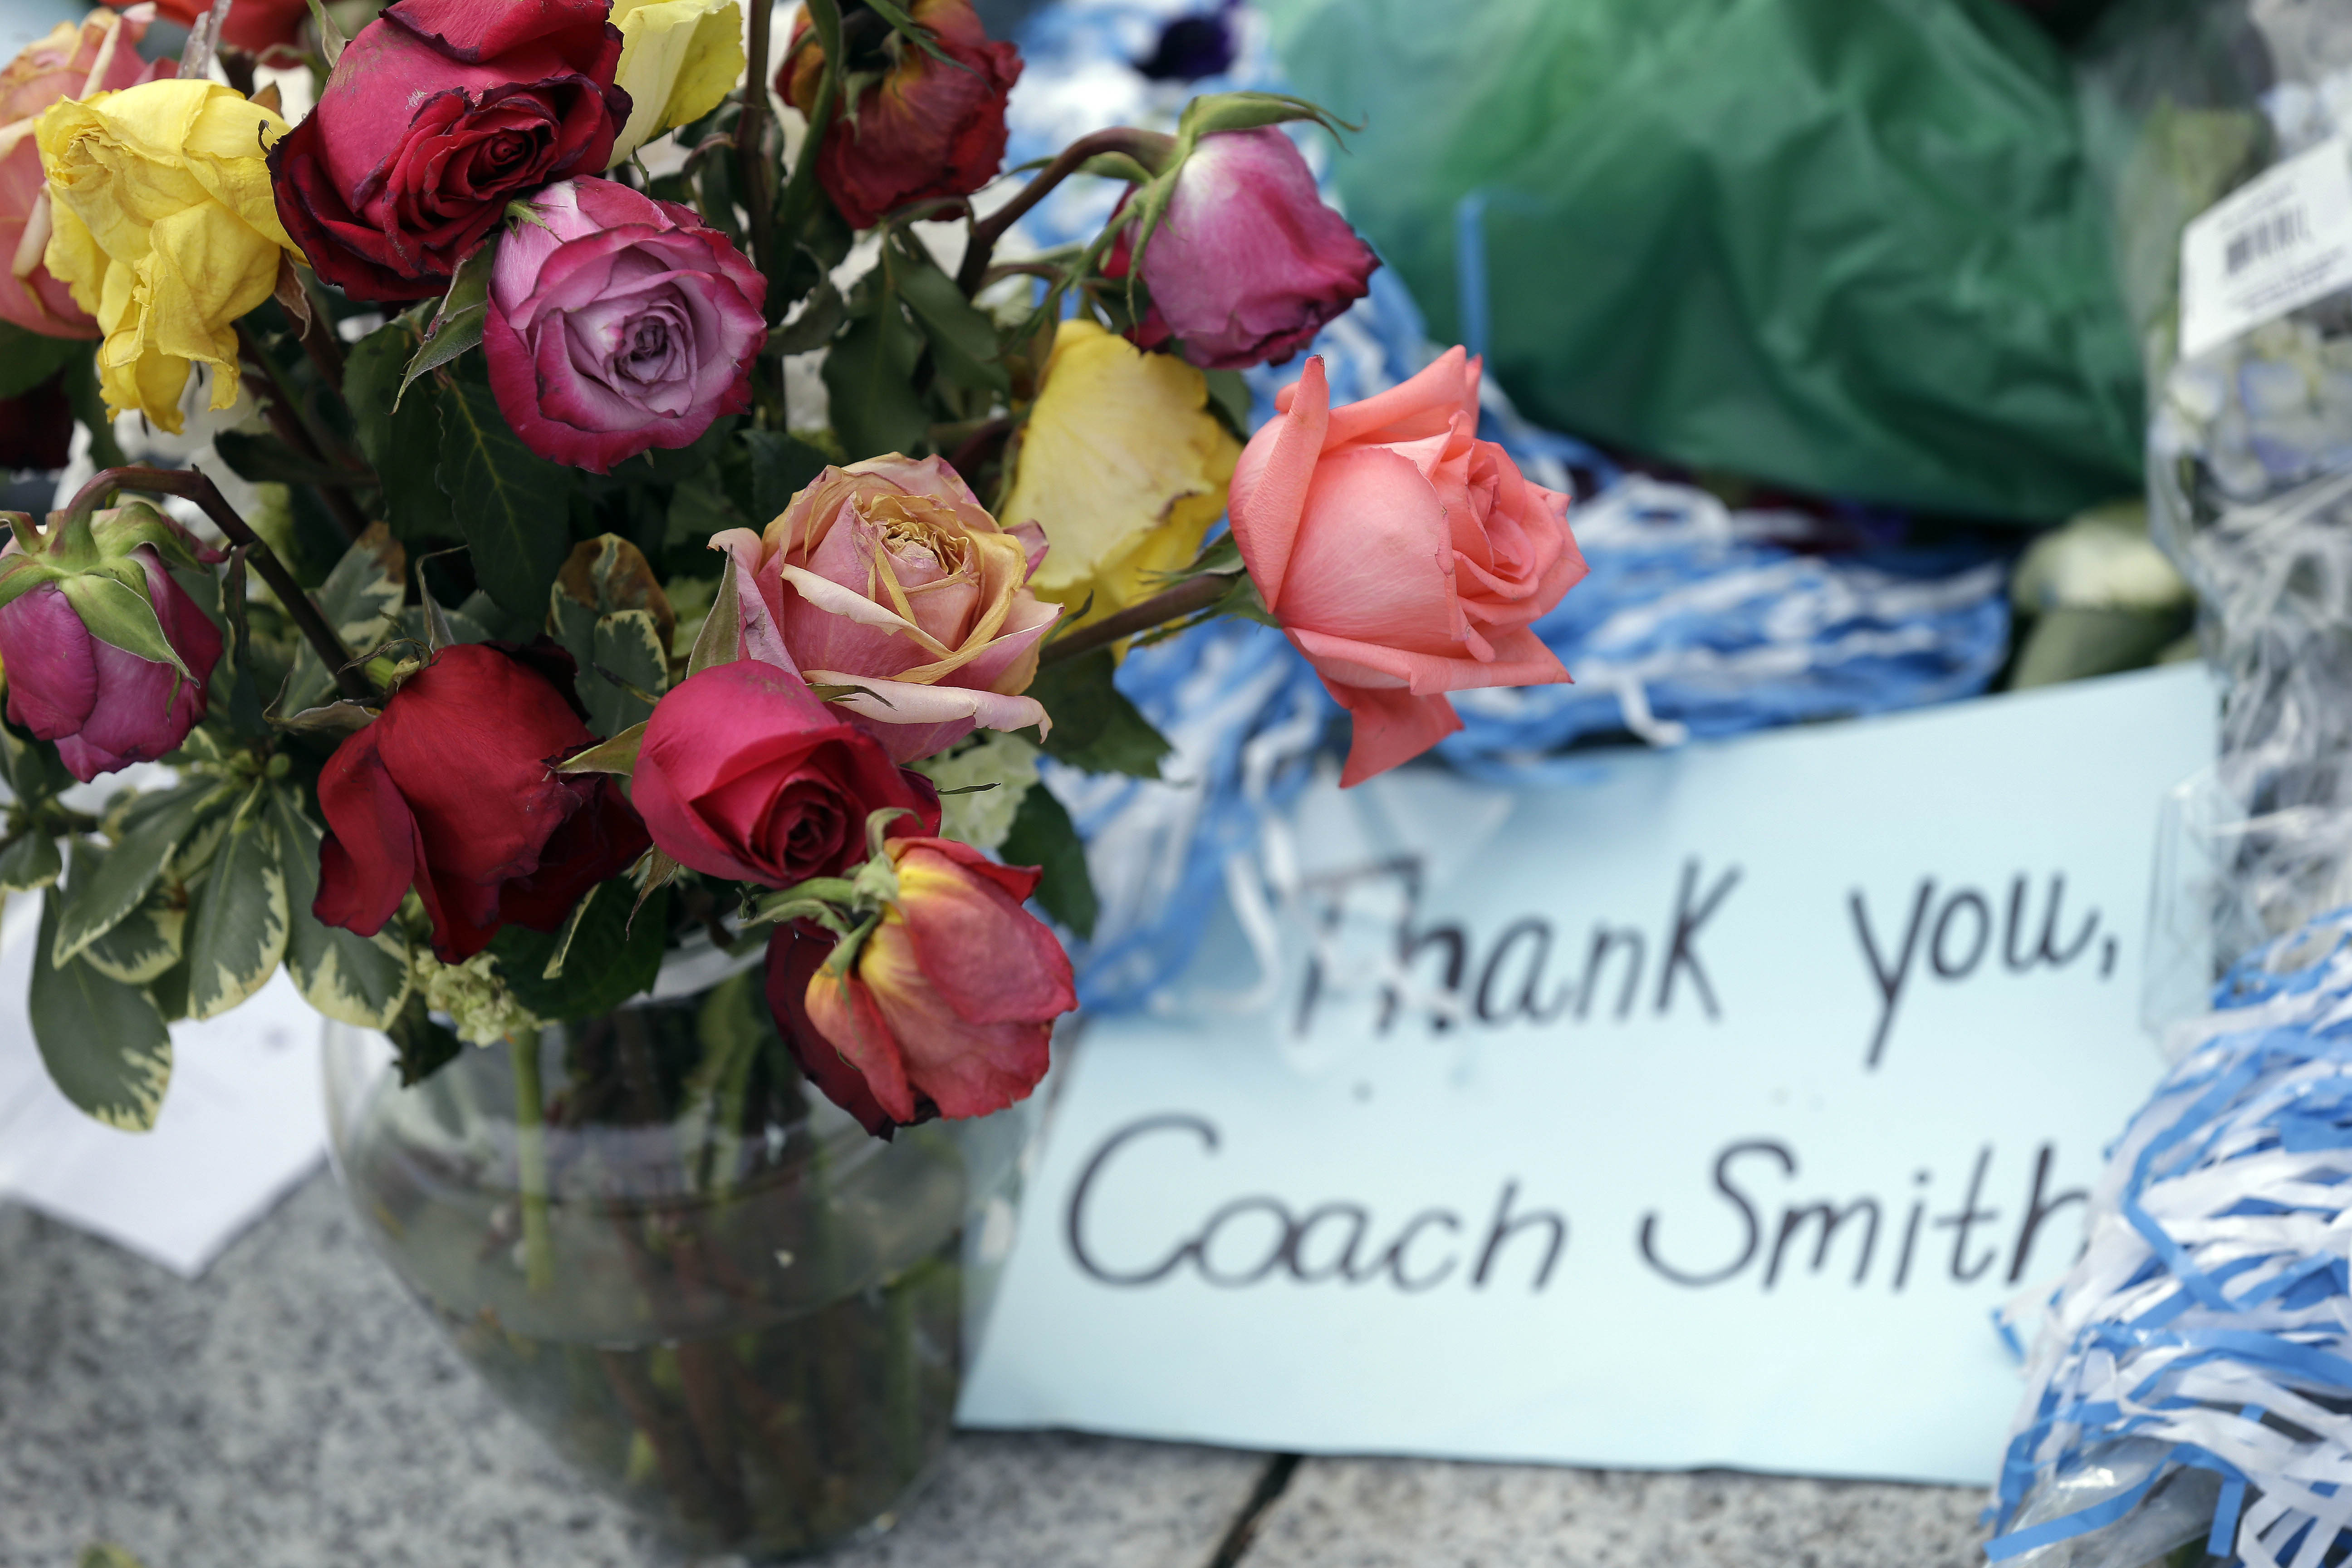 thank you coach smith